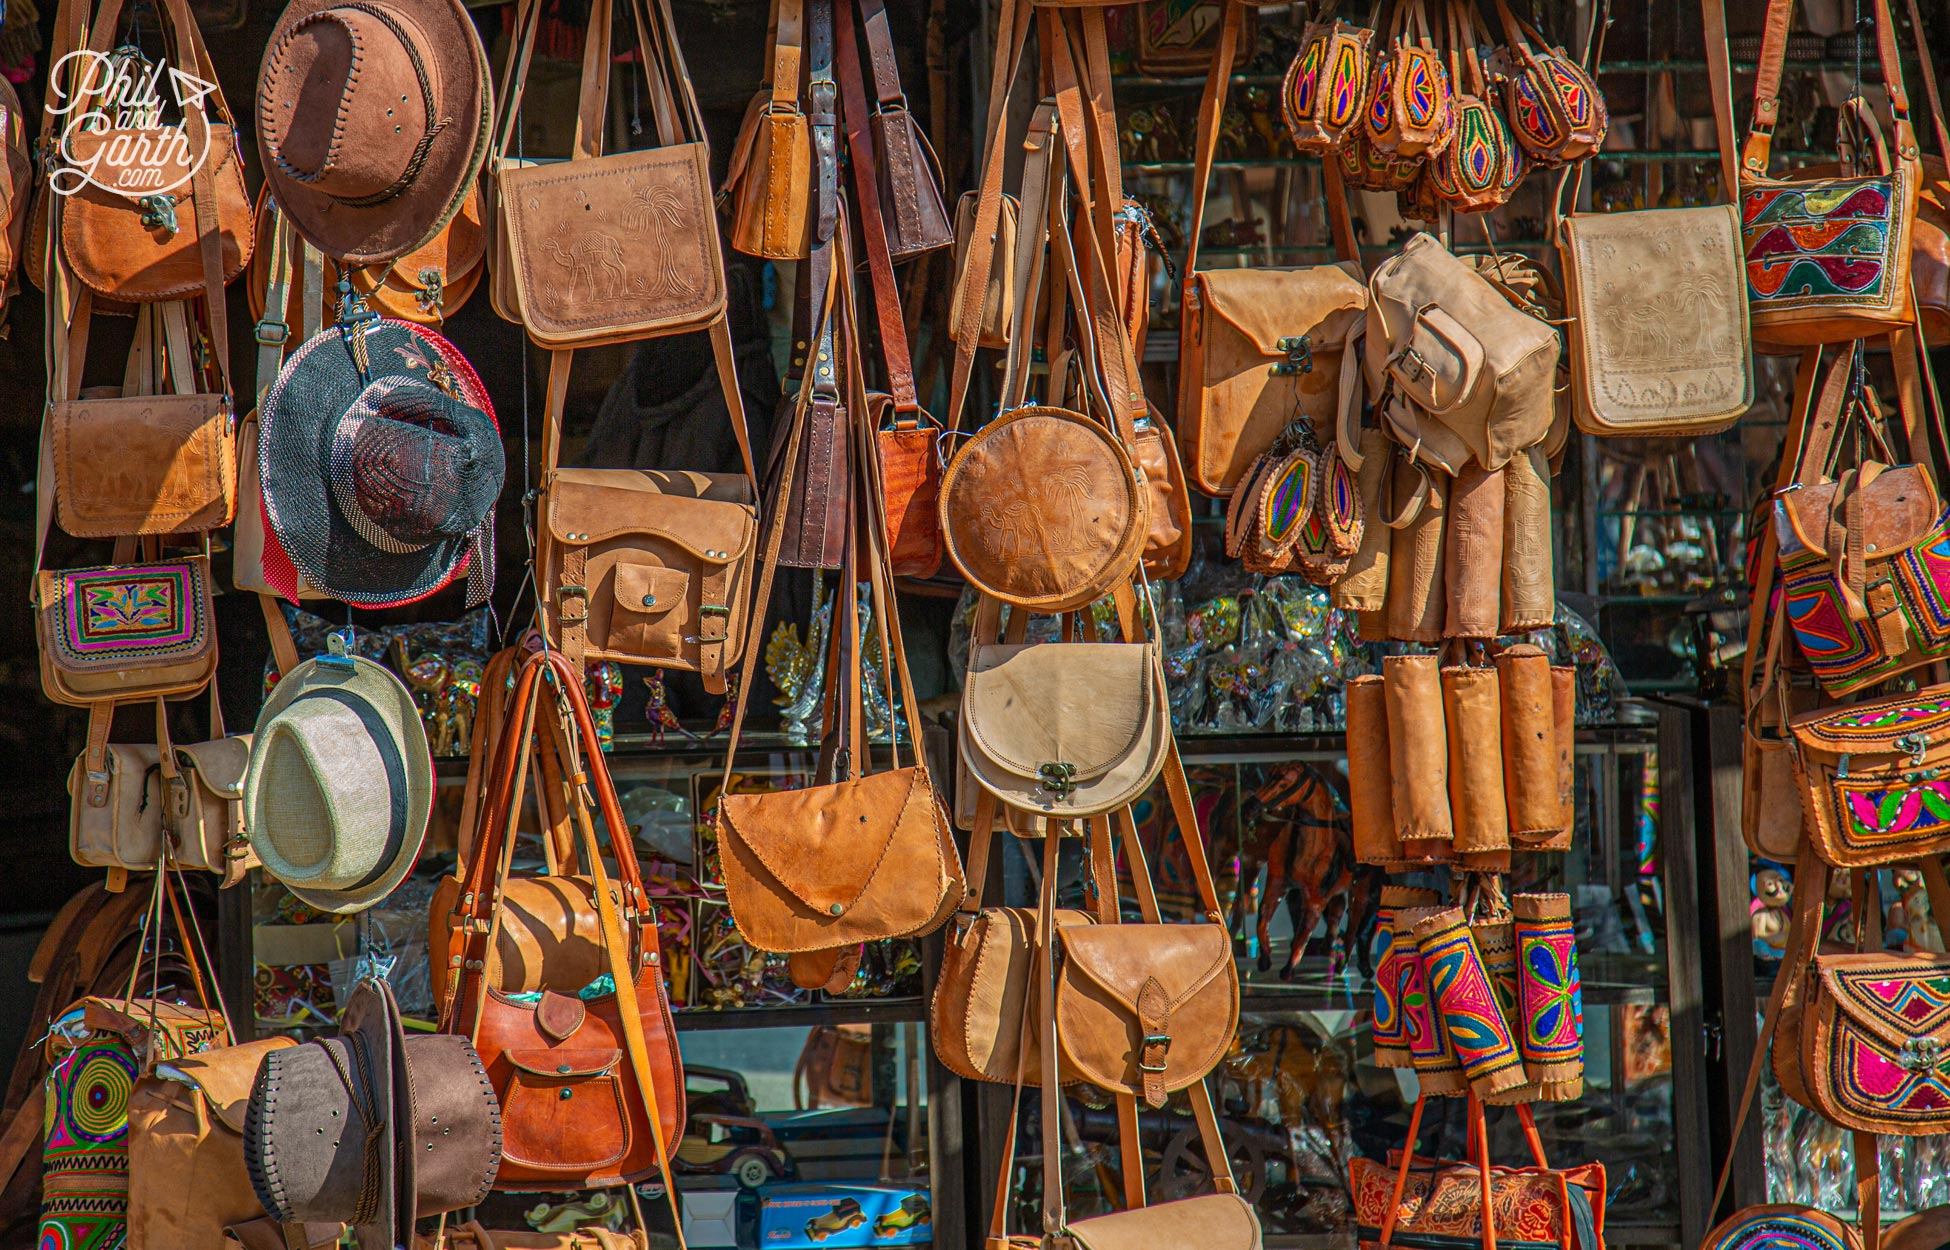 Leather goods for sale, we were tempted to buy a satchel